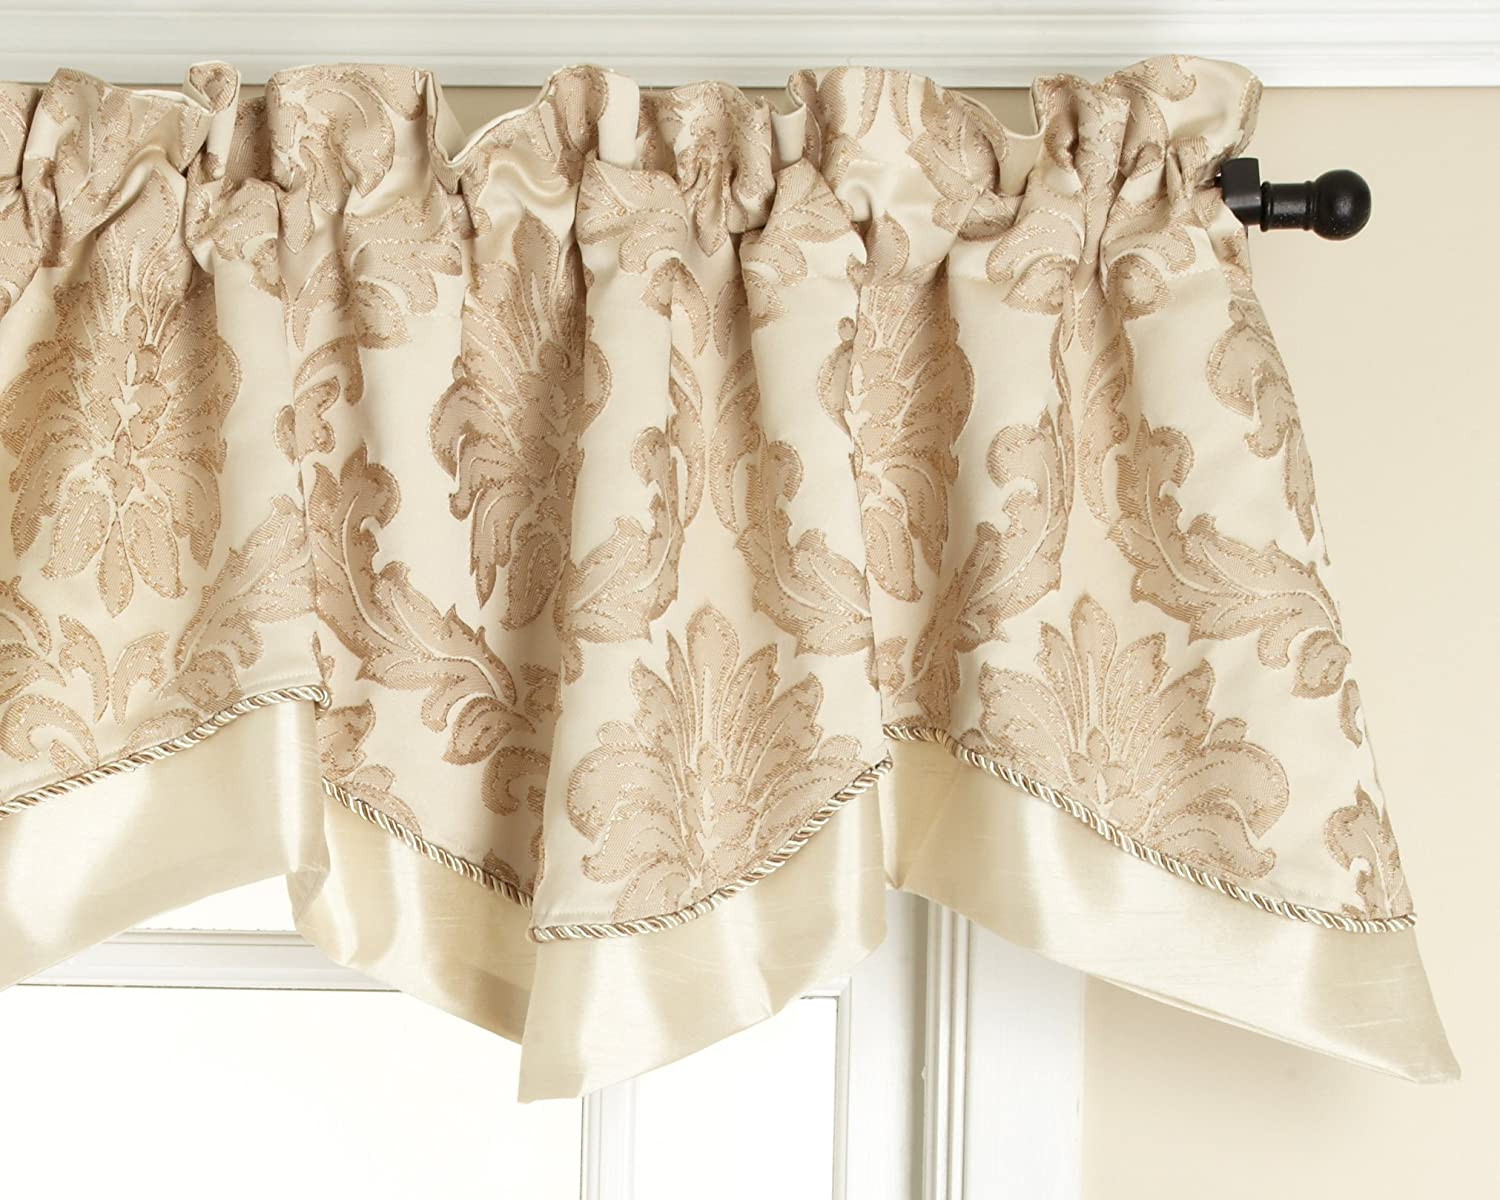 Style Master Renaissance Home Fashion Darby Layered Scalloped Valance with Cording, Ivory, 50 by 17-Inch